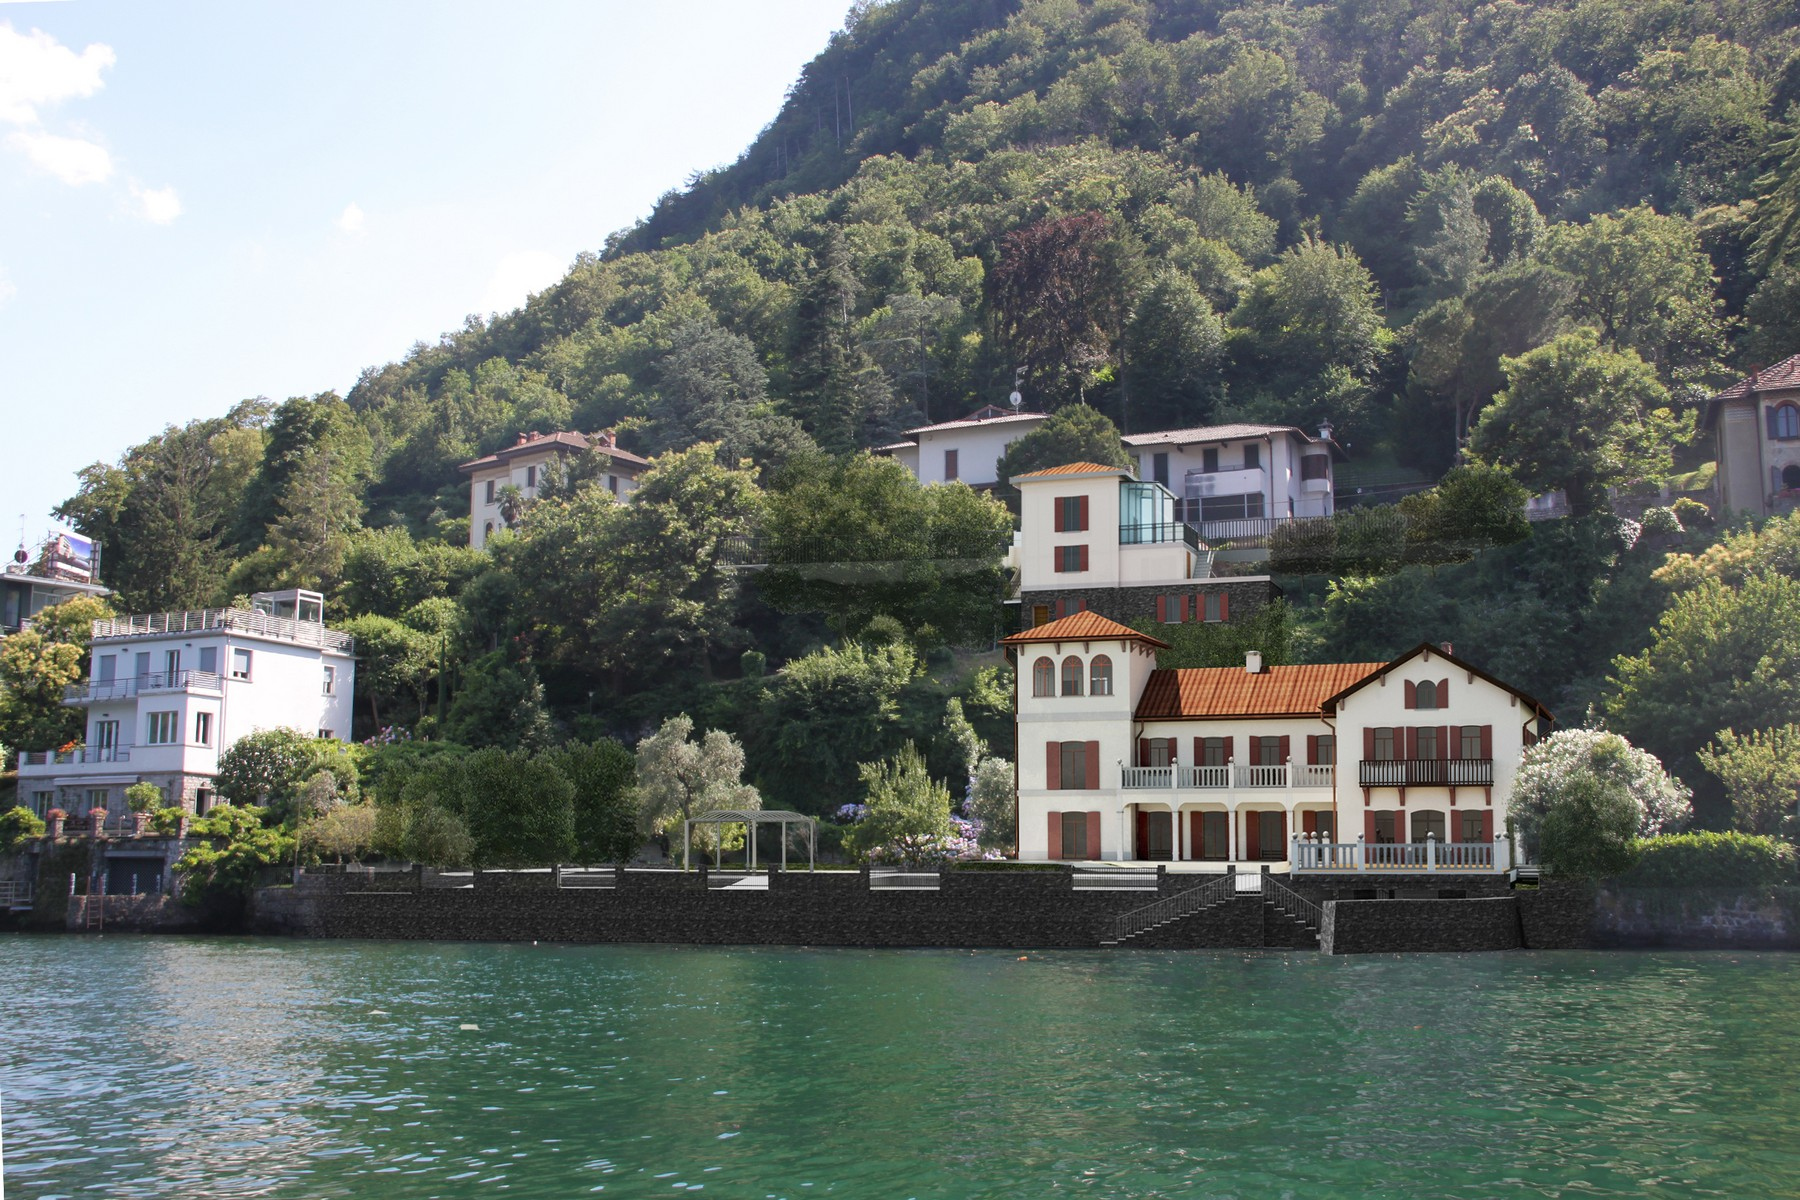 Property for Sale at Incredible pieds dans l'eau property with development project Laglio, Como Italy